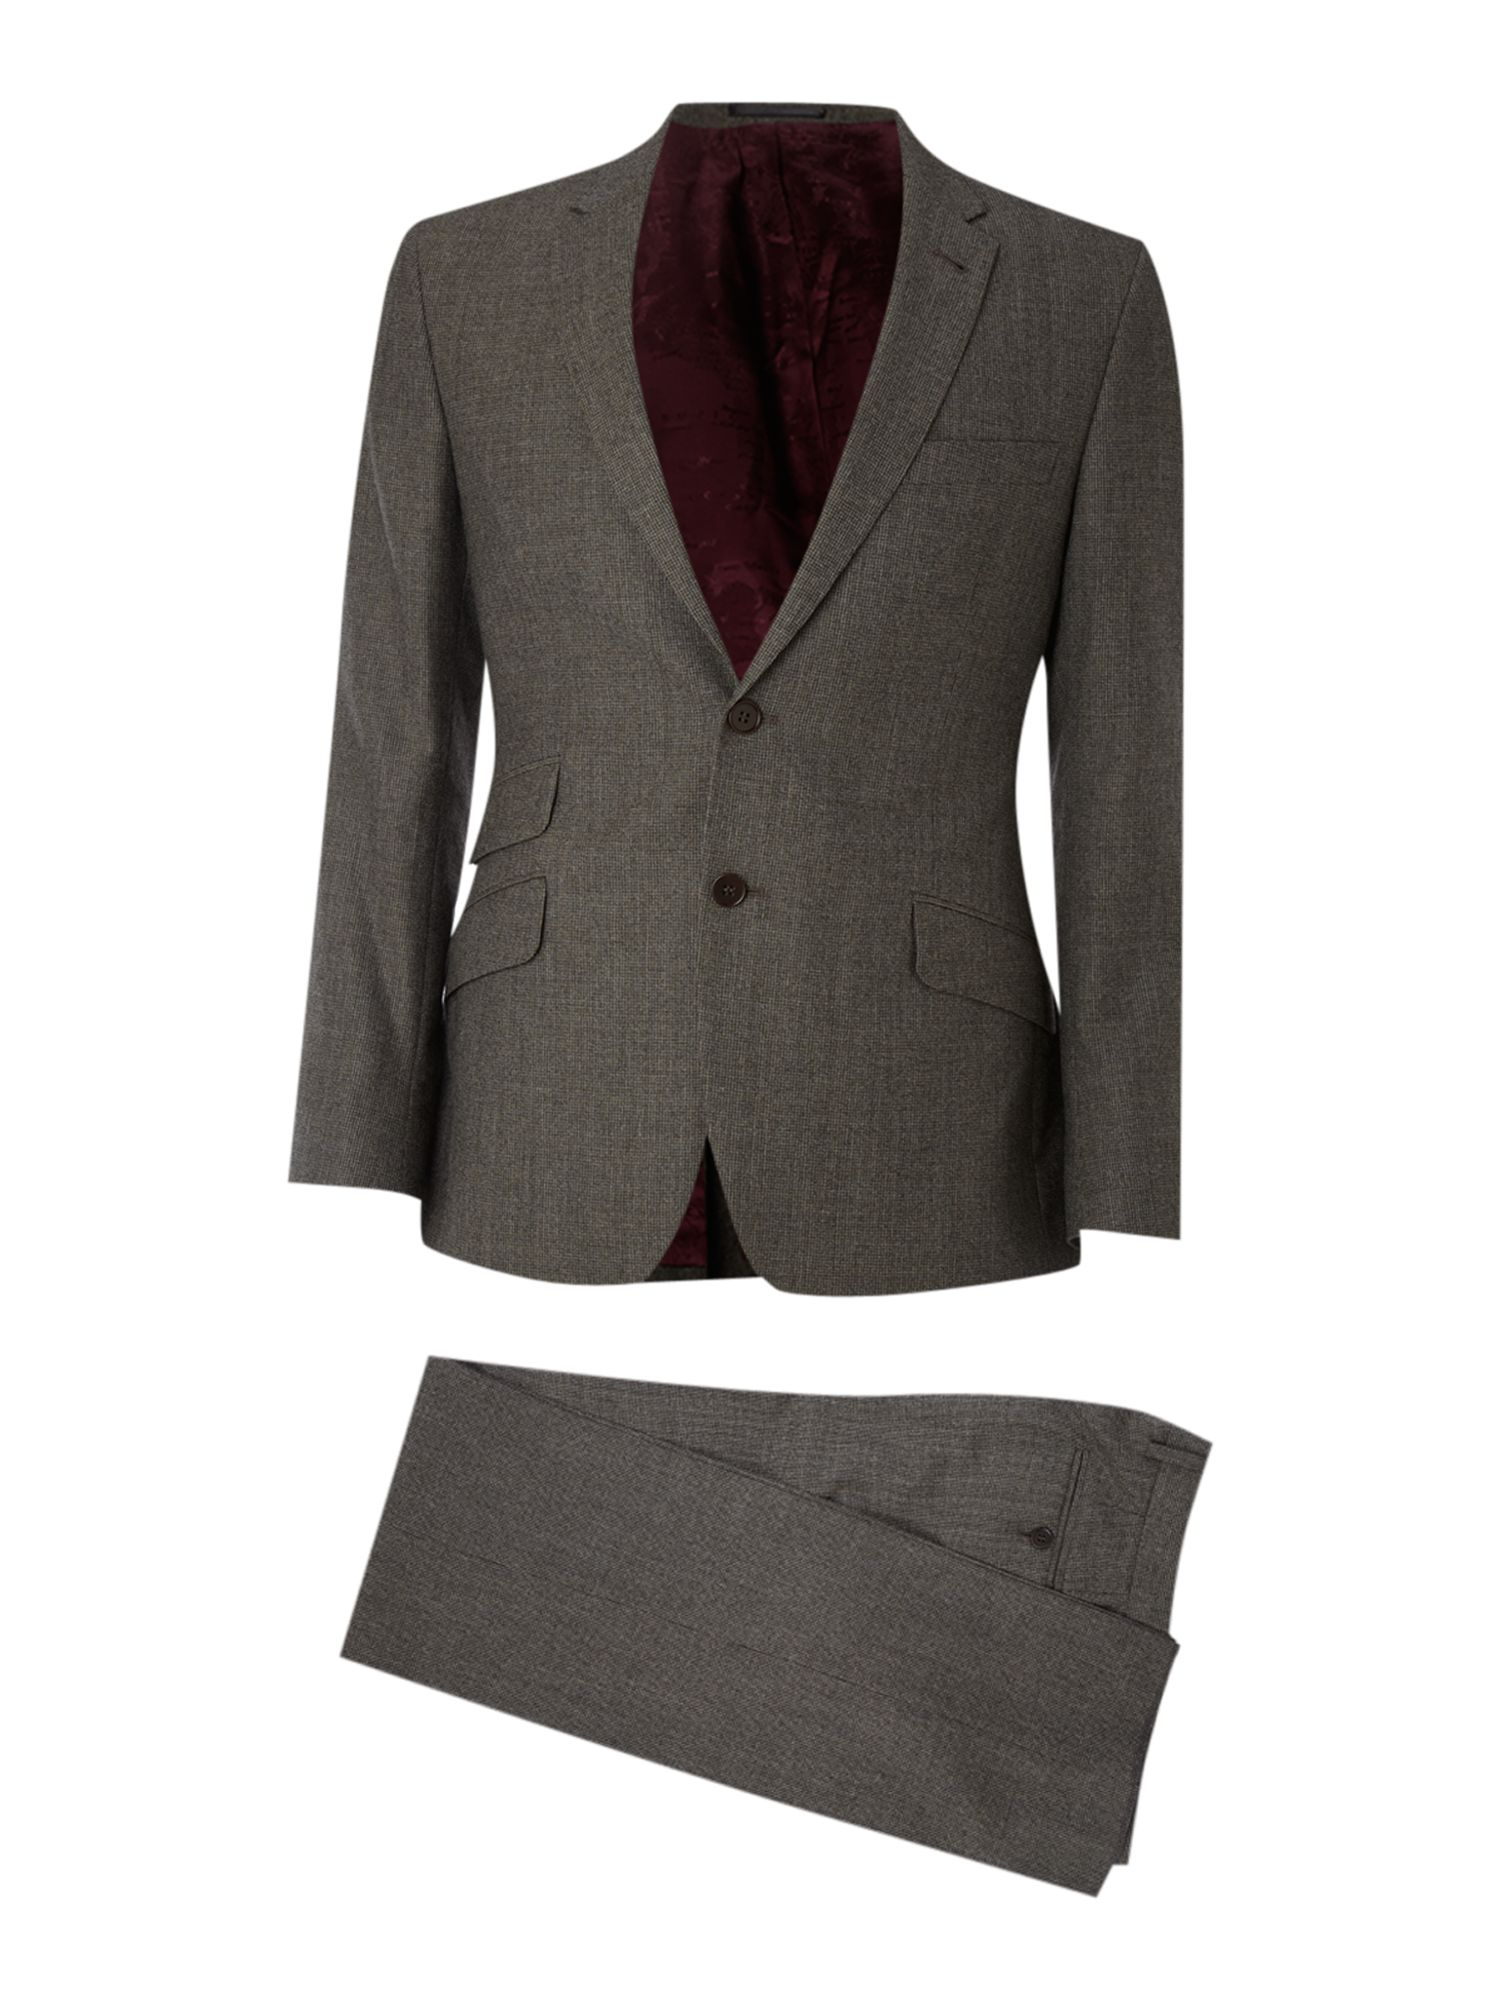 Single breasted milled puppytooth suit